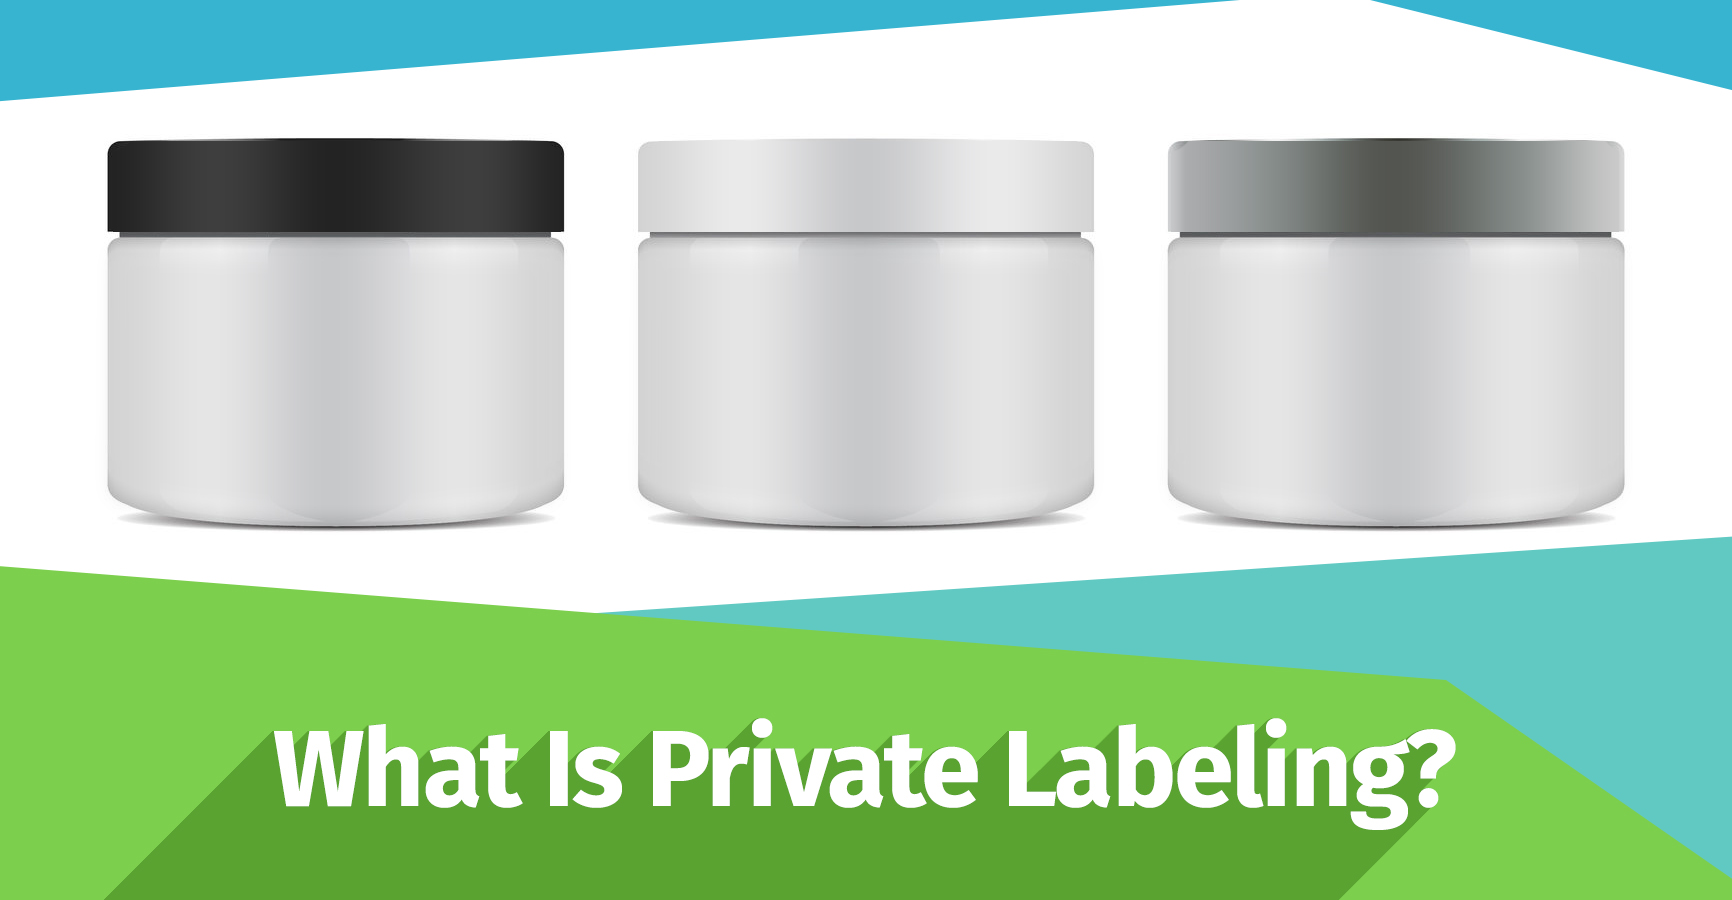 what is private labeling?